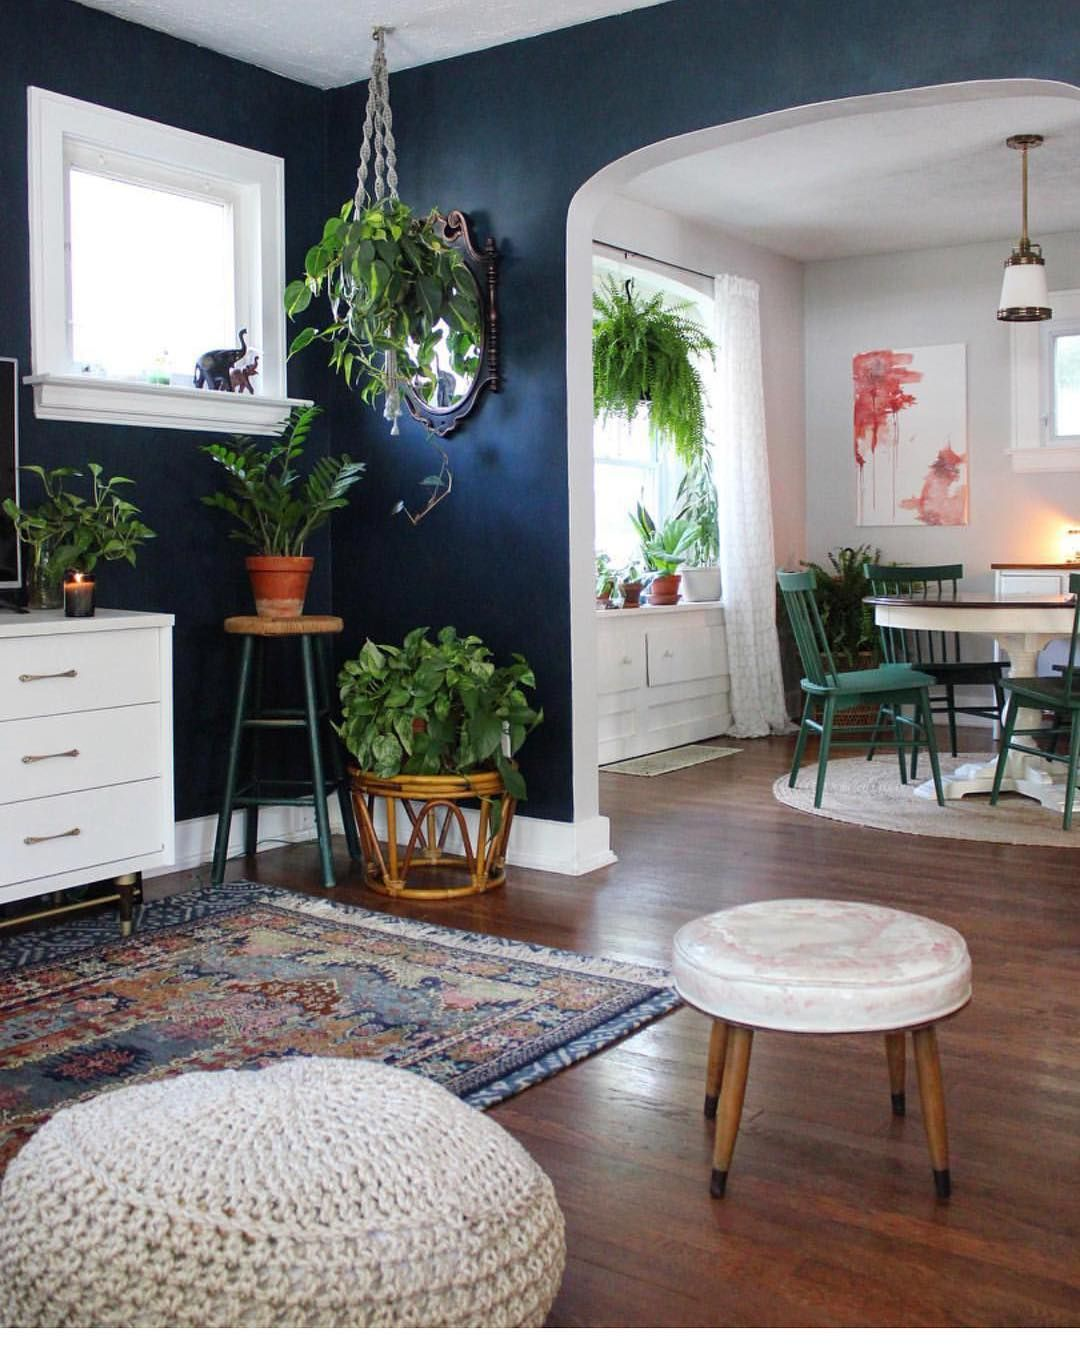 30 Incredible Eclectic Dining Designs: Eclectic Boho Living Room And Dining Room Decor. Plants